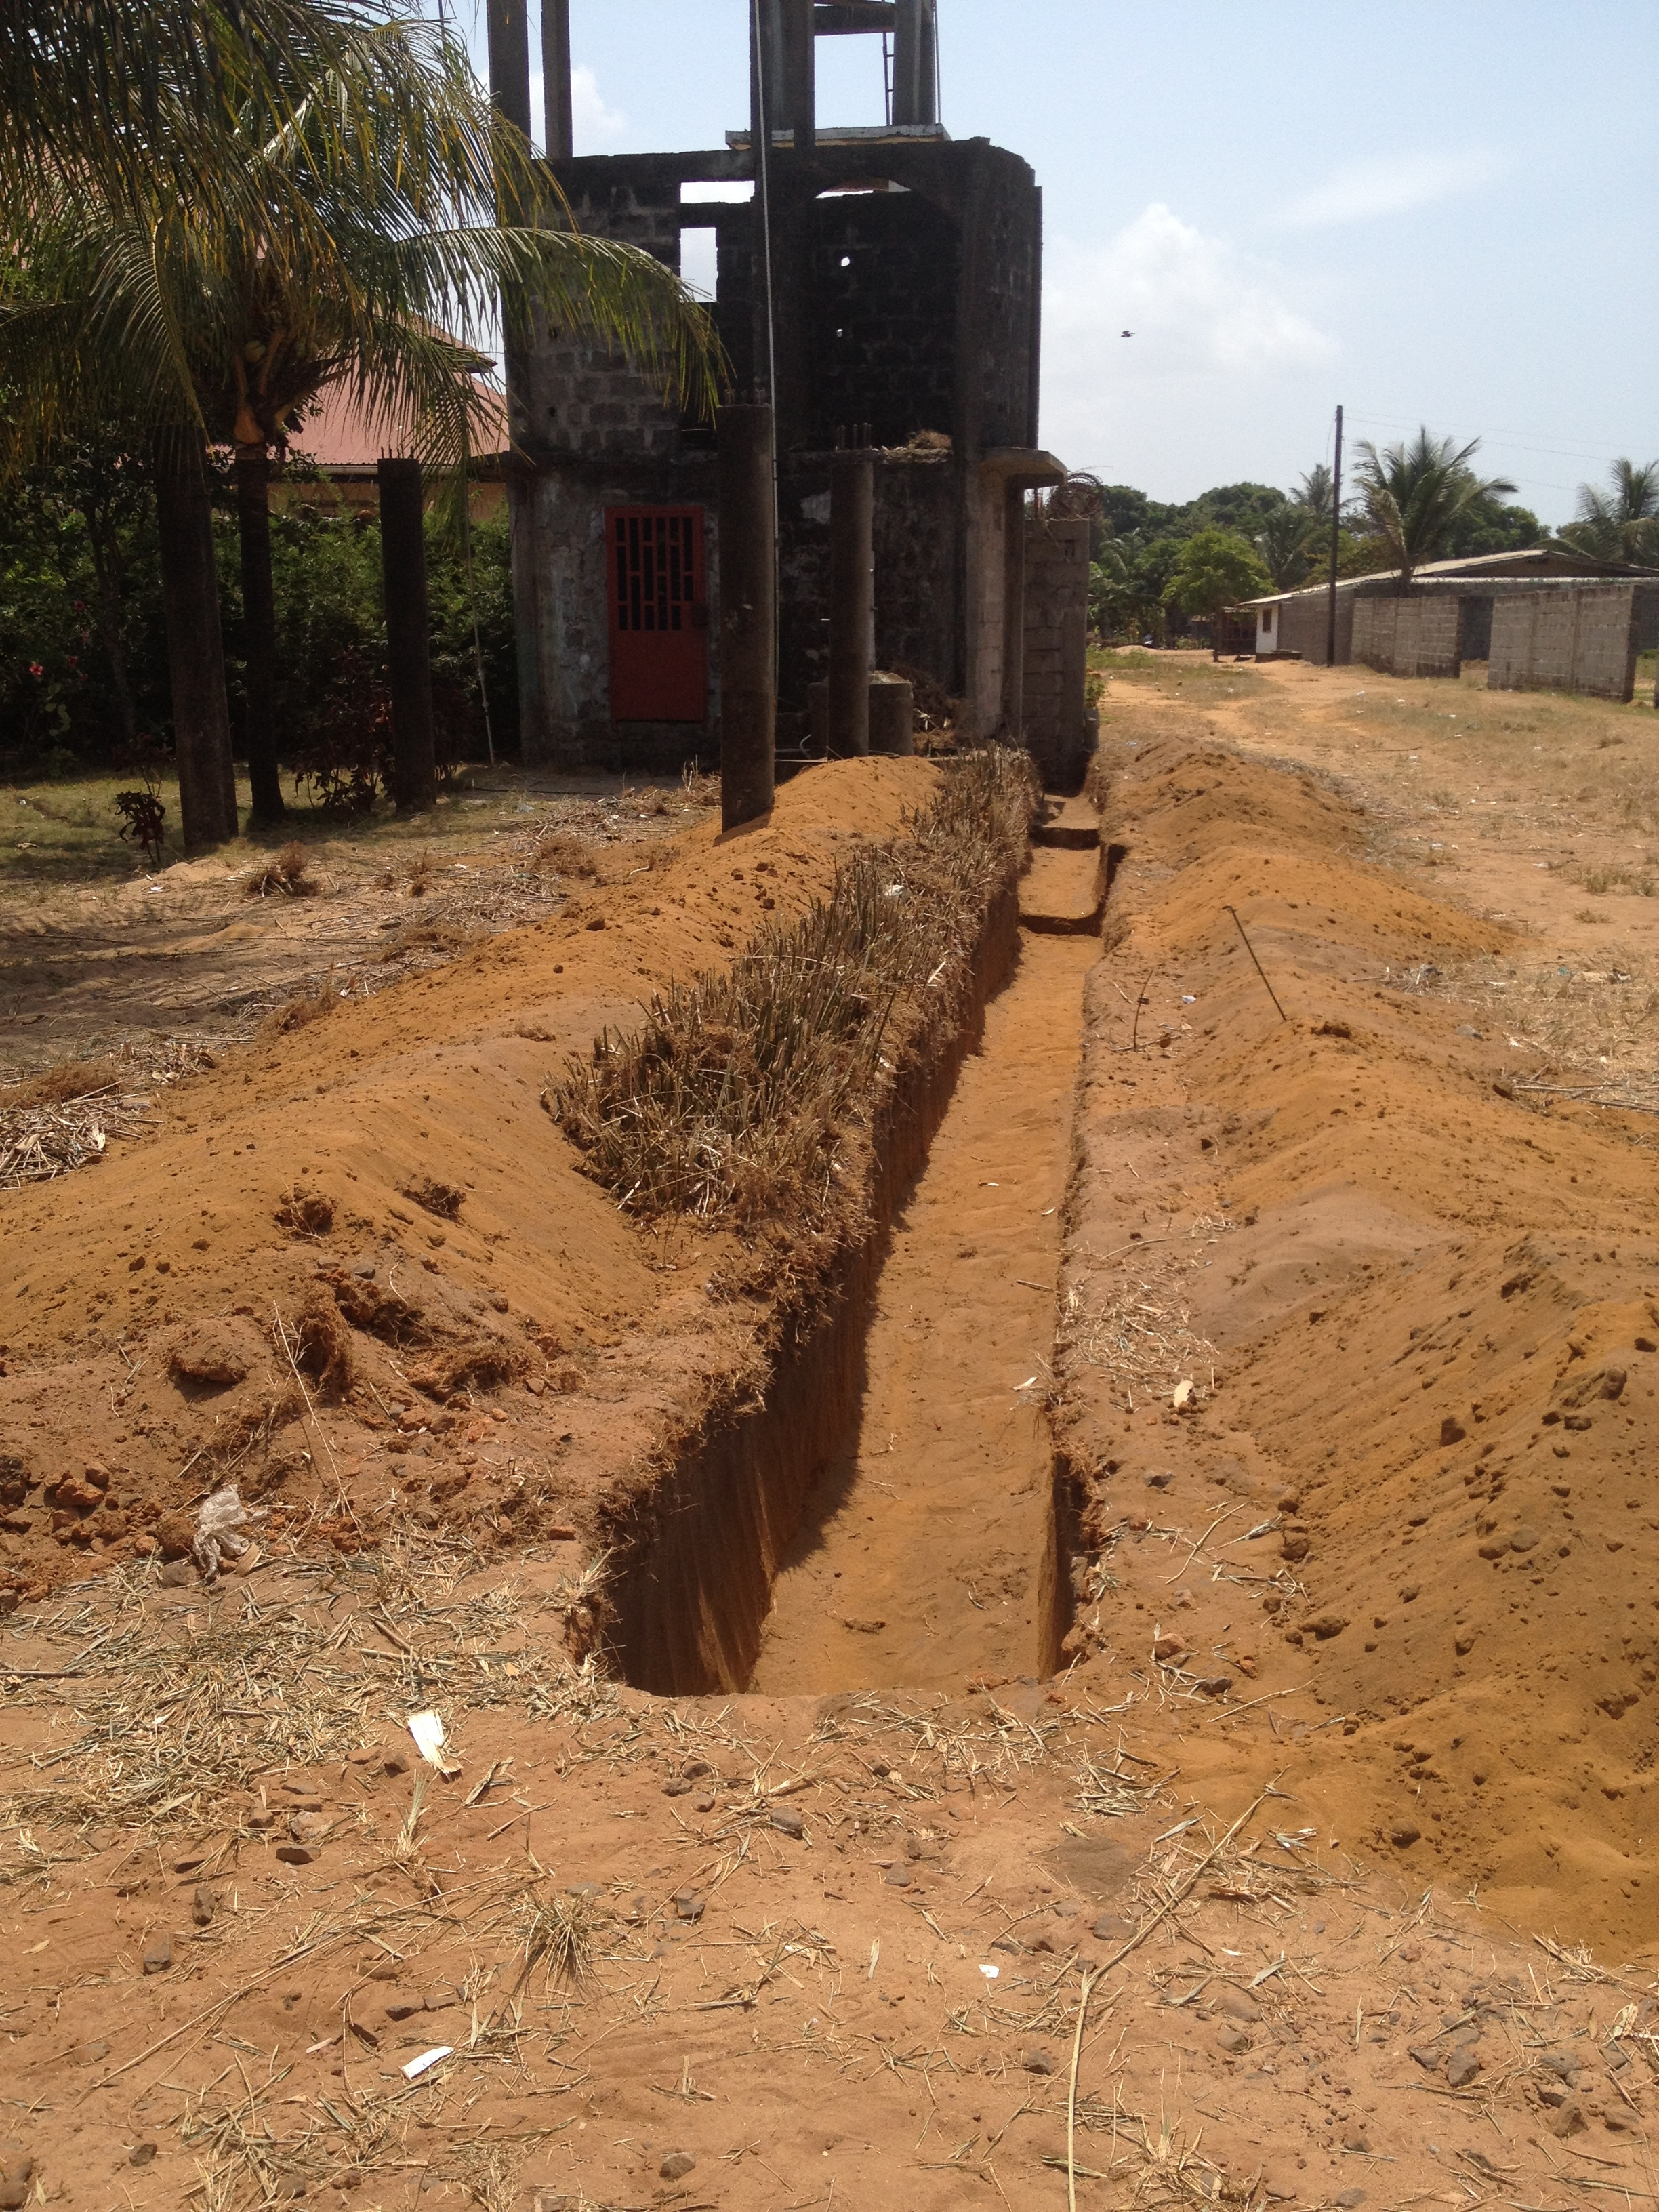 The front fence trench.